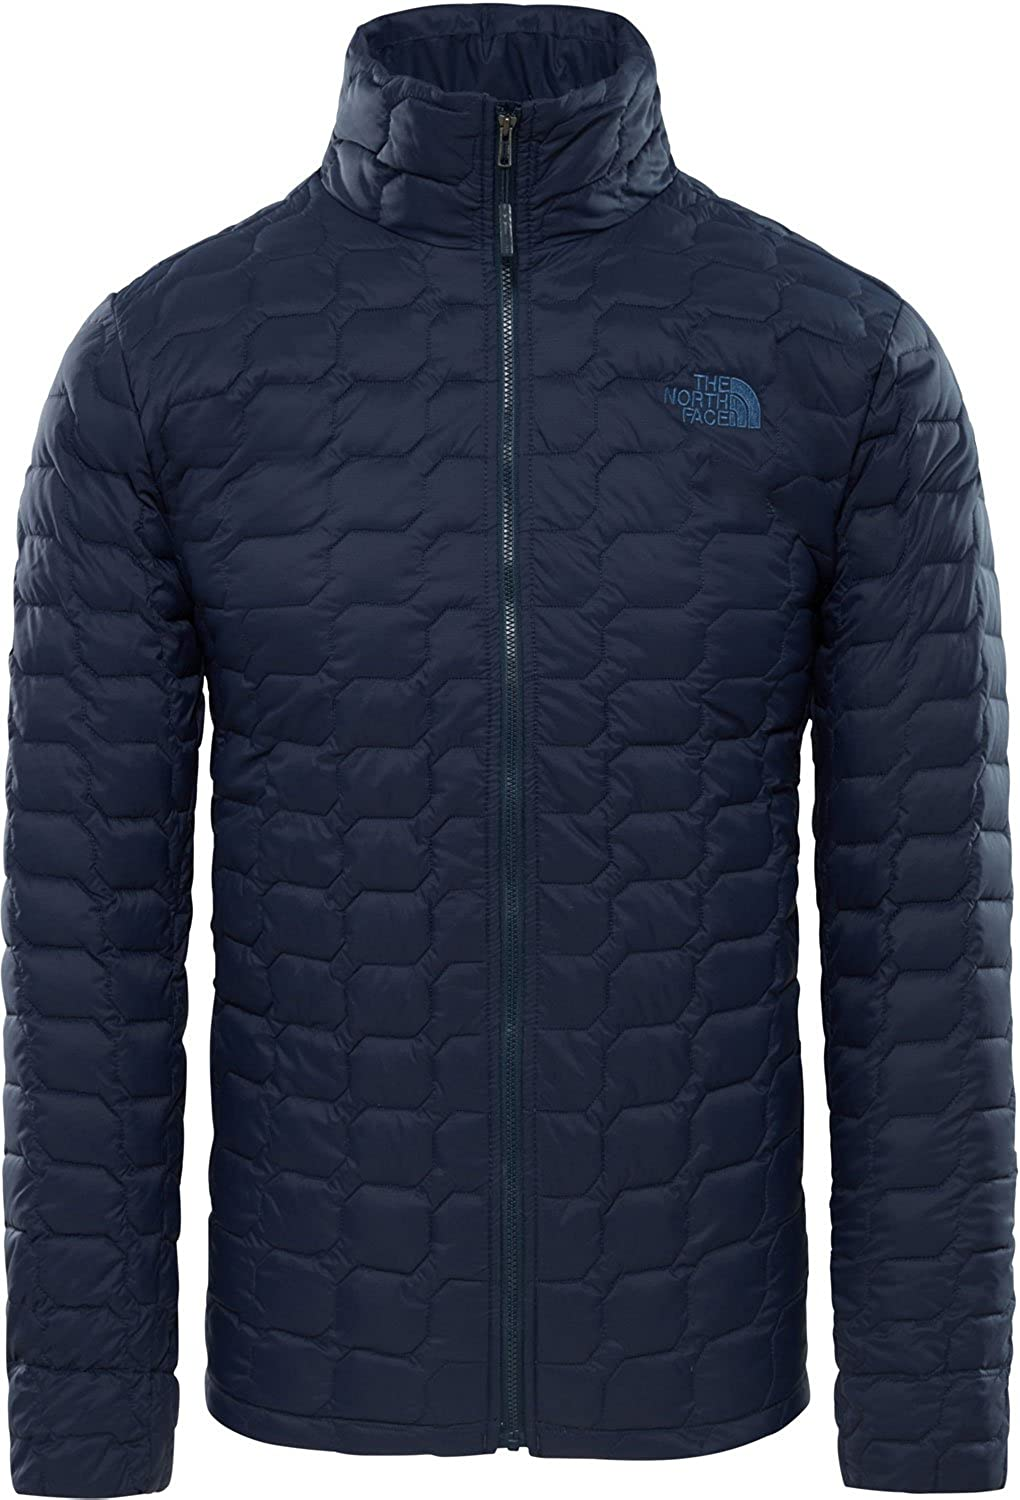 TALLA S. The North Face Tball - Chaqueta Hombre - Azul 2018